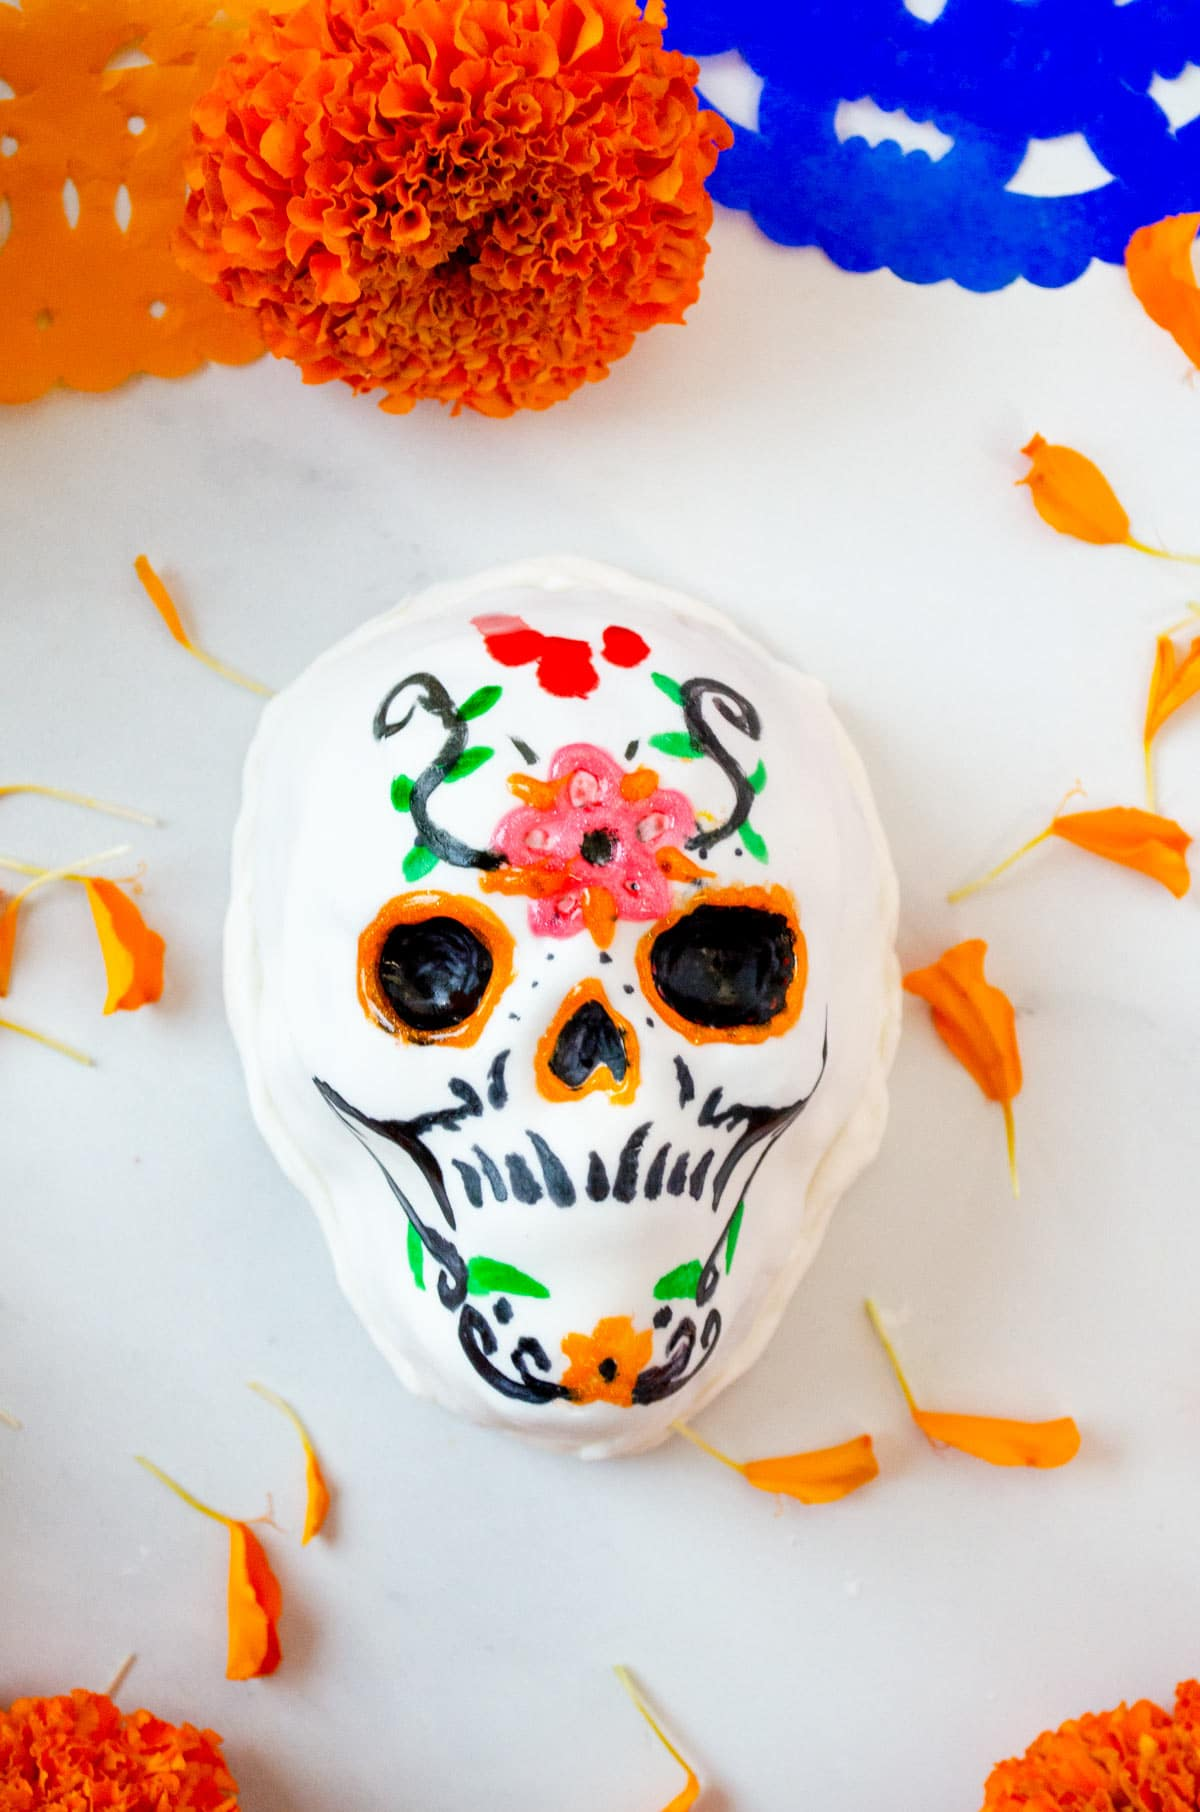 cake shaped like a skull decorated with colorful flowers